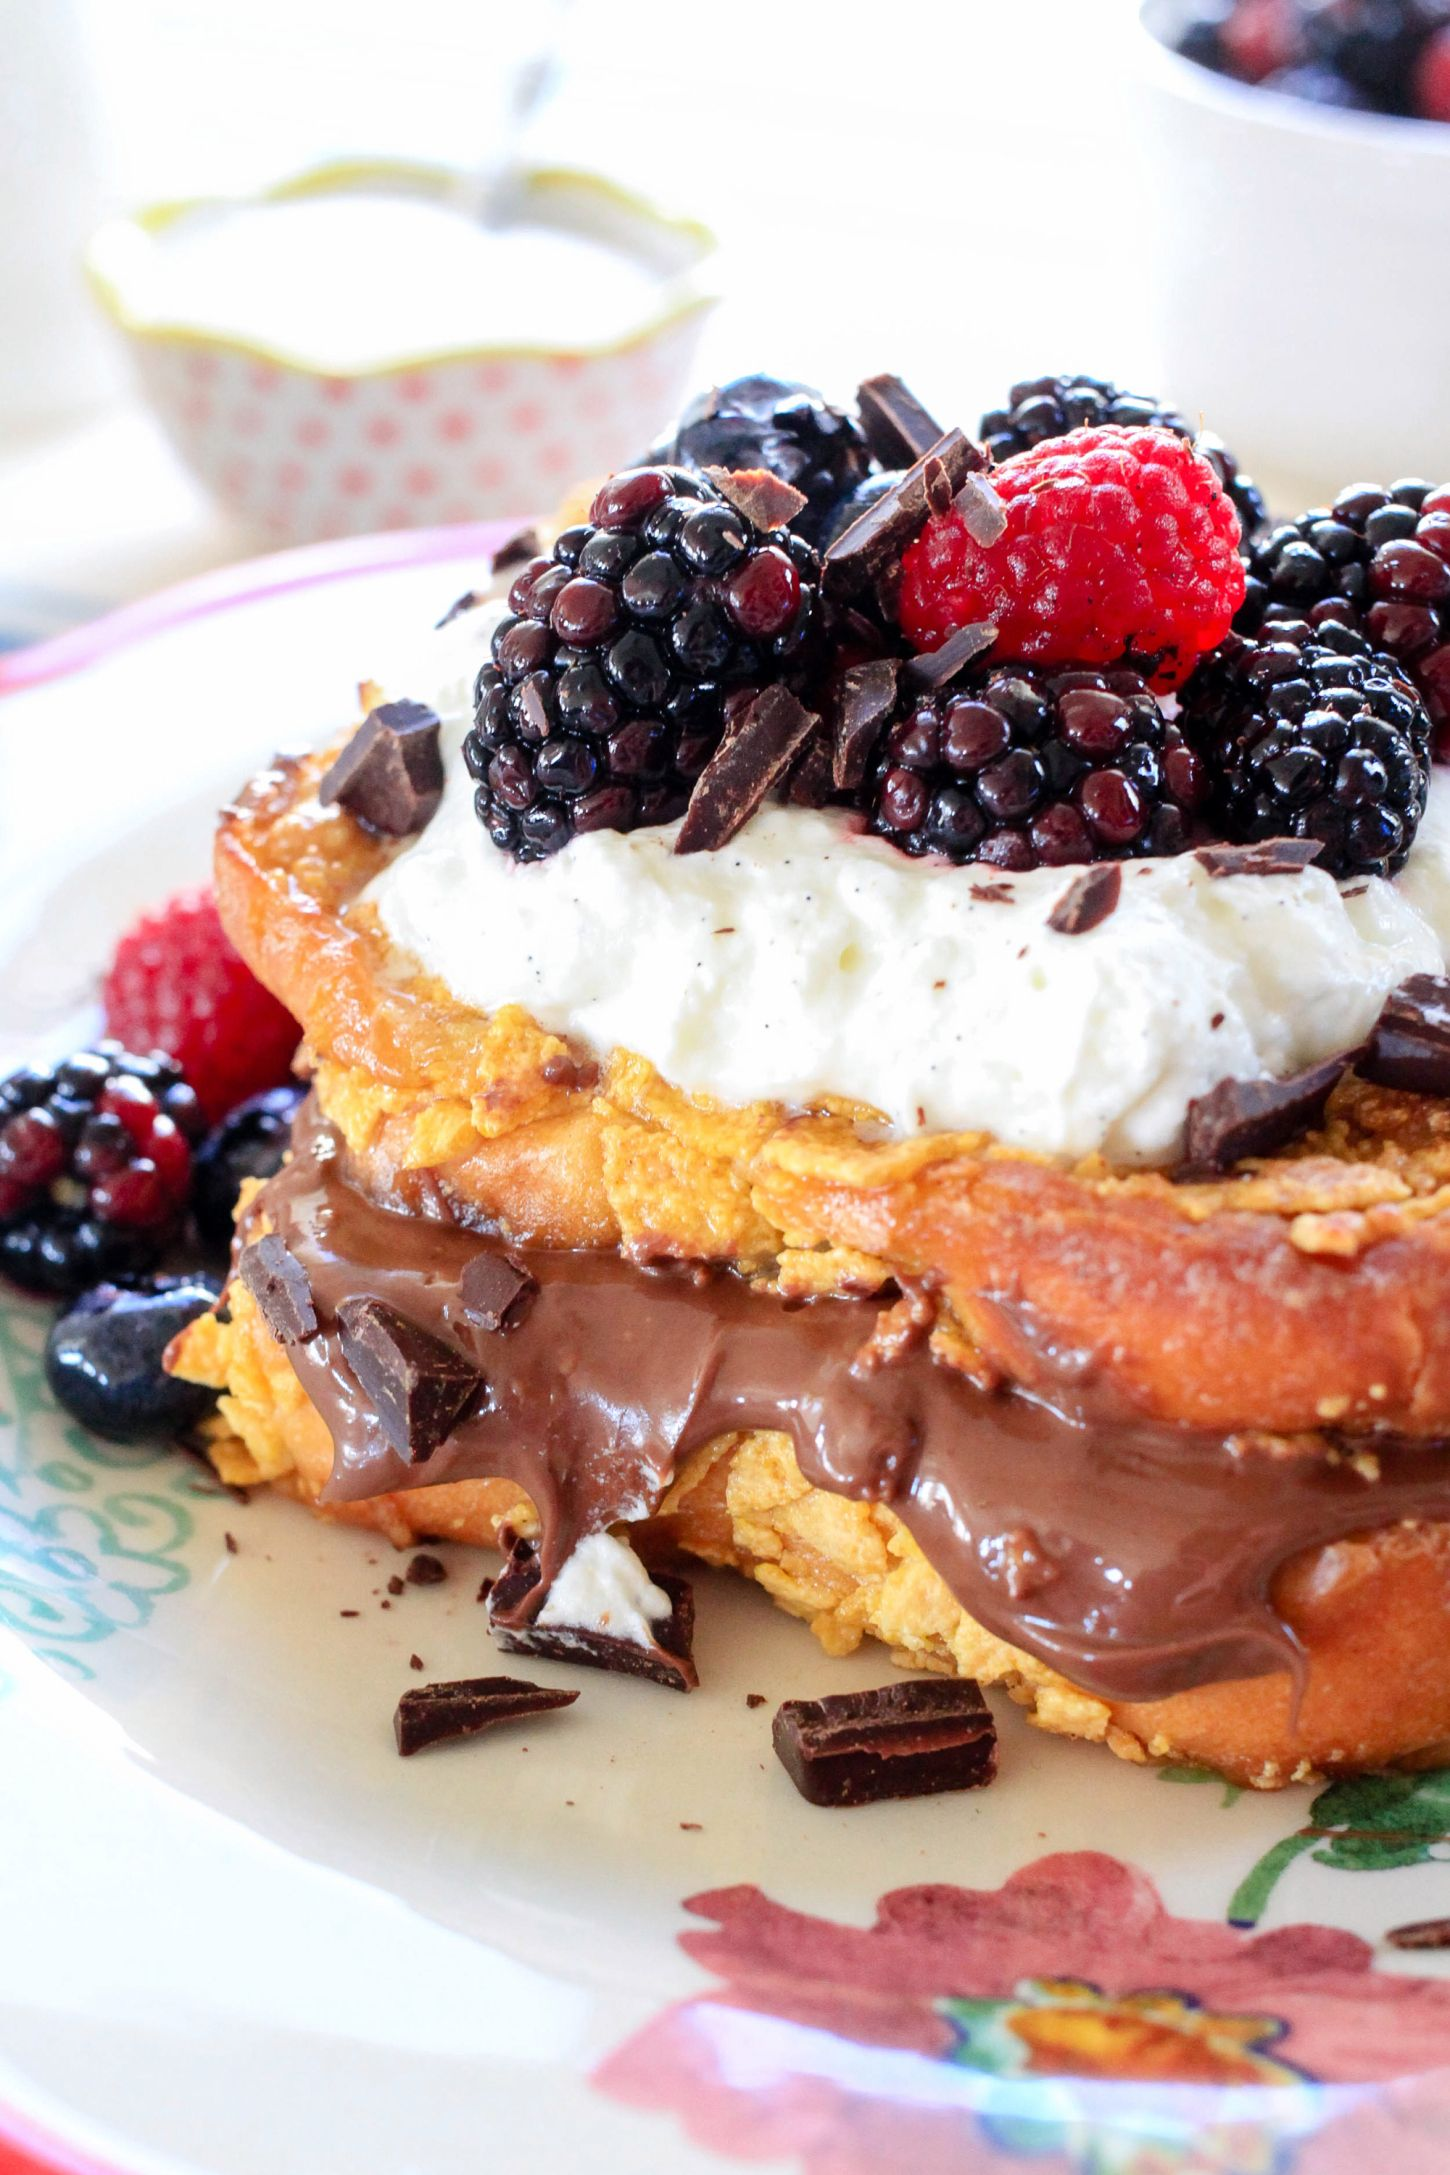 Nutella-Stuffed Crunchy French Toast with Berries